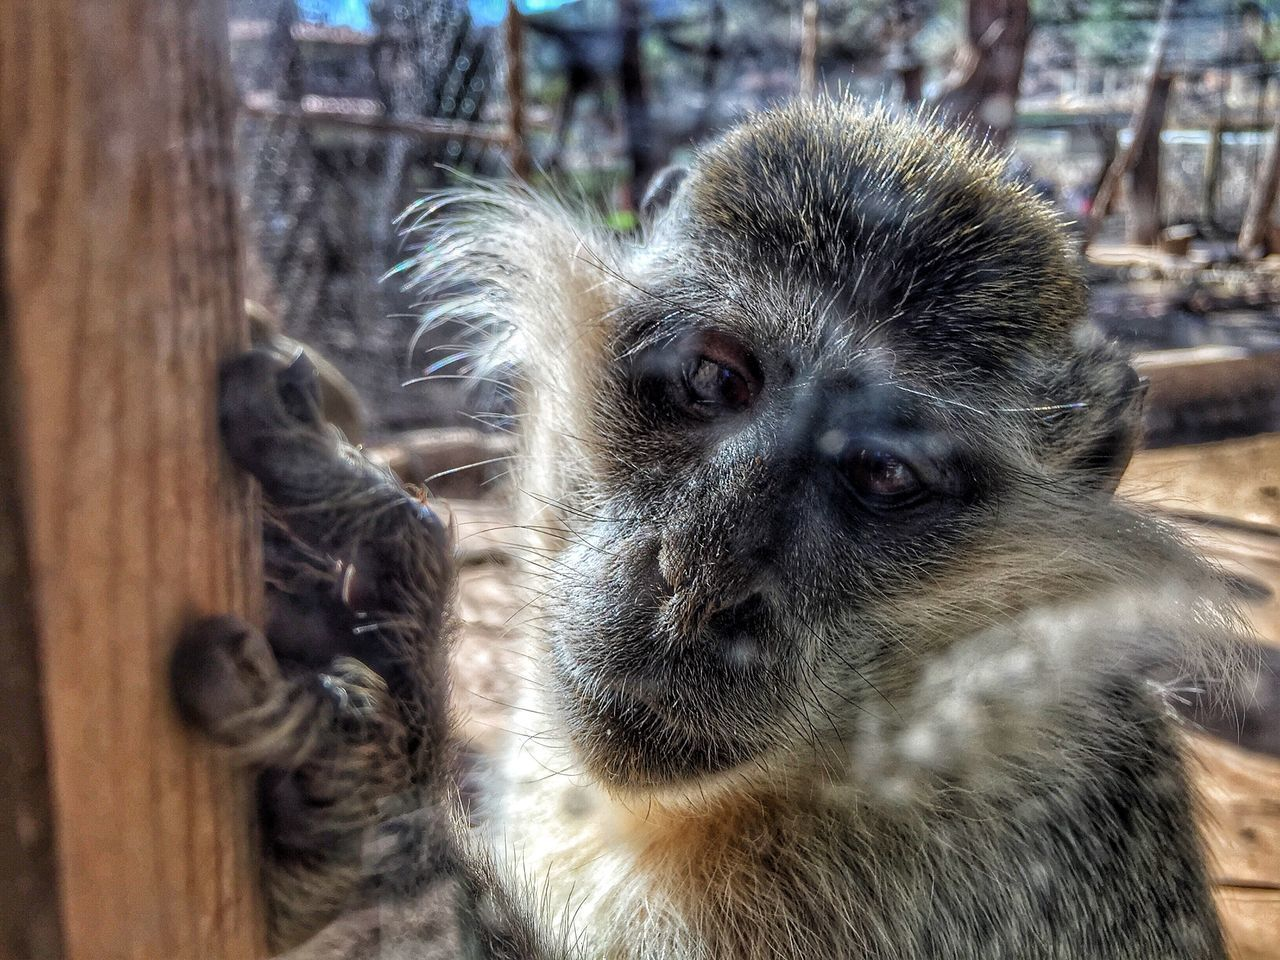 animal themes, monkey, primate, animals in the wild, one animal, animal wildlife, mammal, close-up, no people, day, outdoors, nature, portrait, baboon